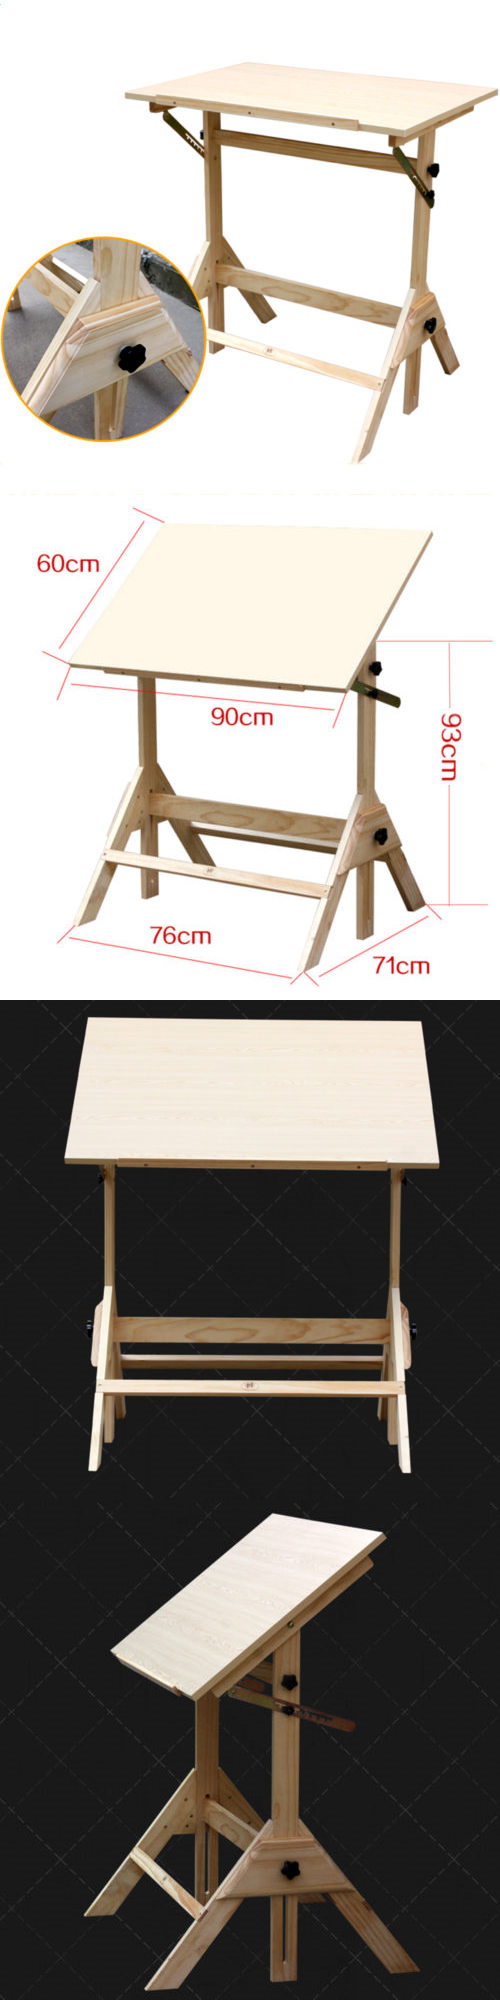 Drawing Boards And Tables 183083: Adjustable Drafting Table Pinewood  Drawing Desk Art Craft Hobby Studio